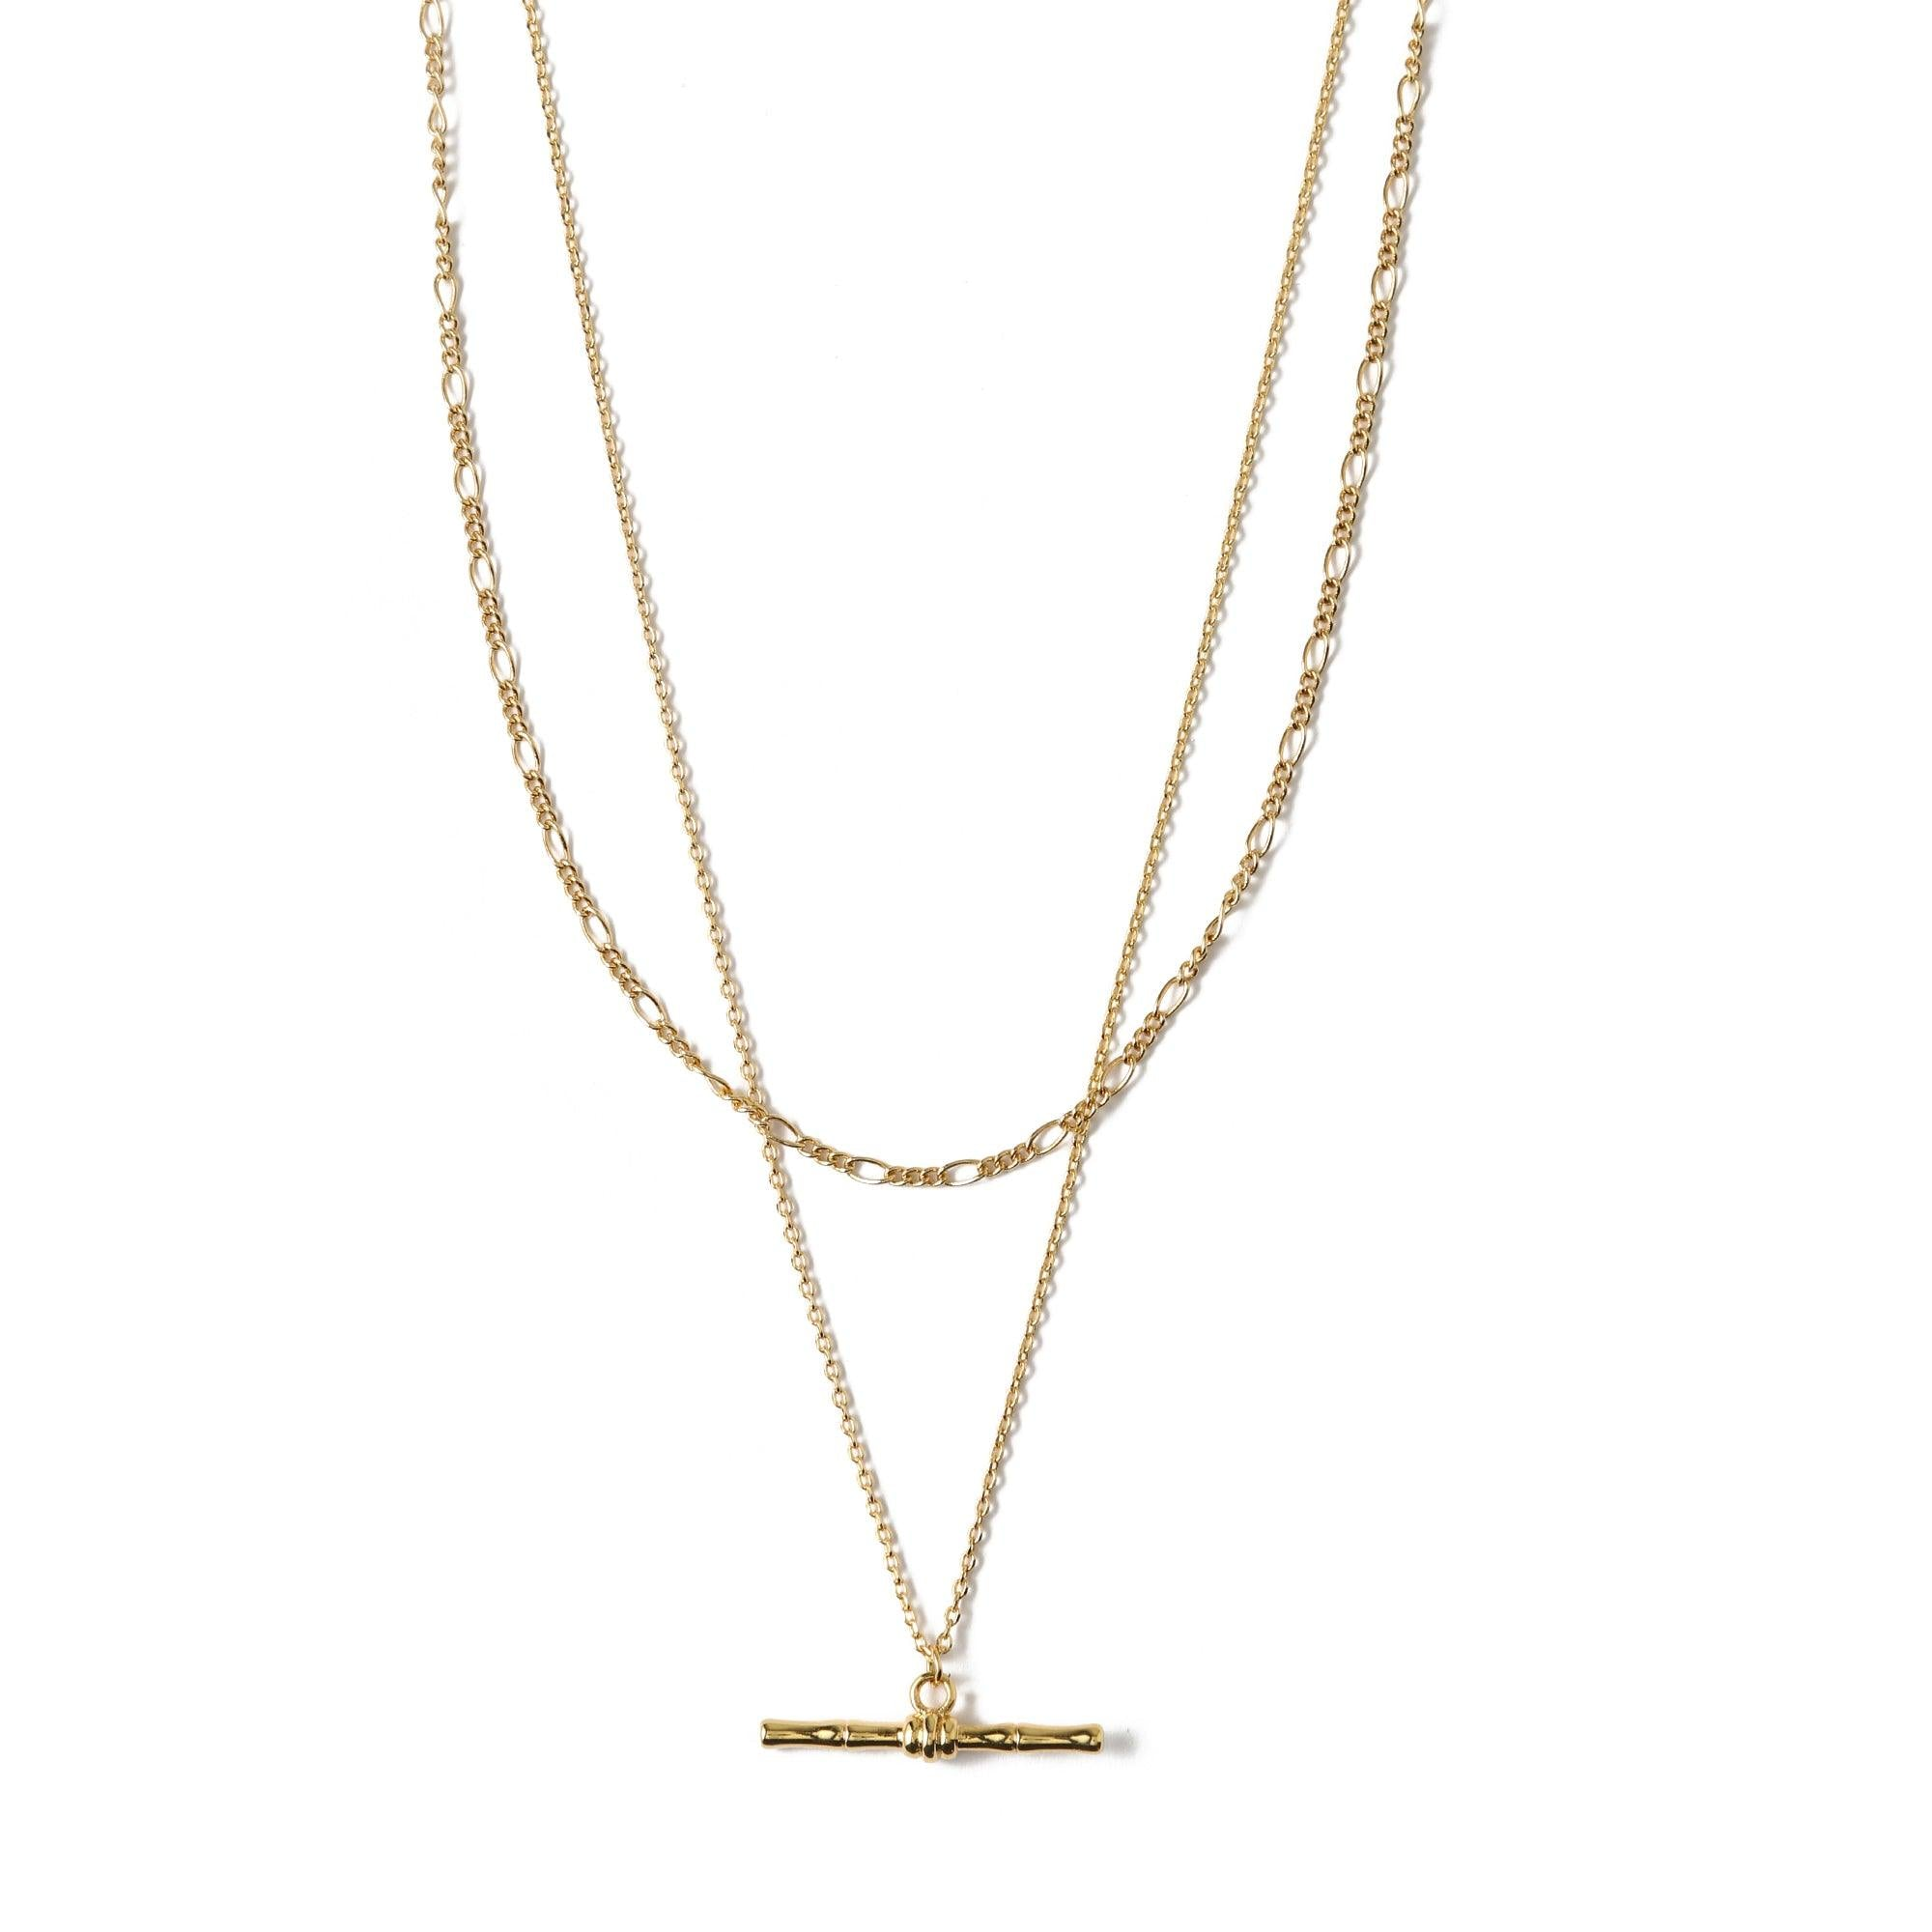 Bamboo T-Bar 2 Row Necklace